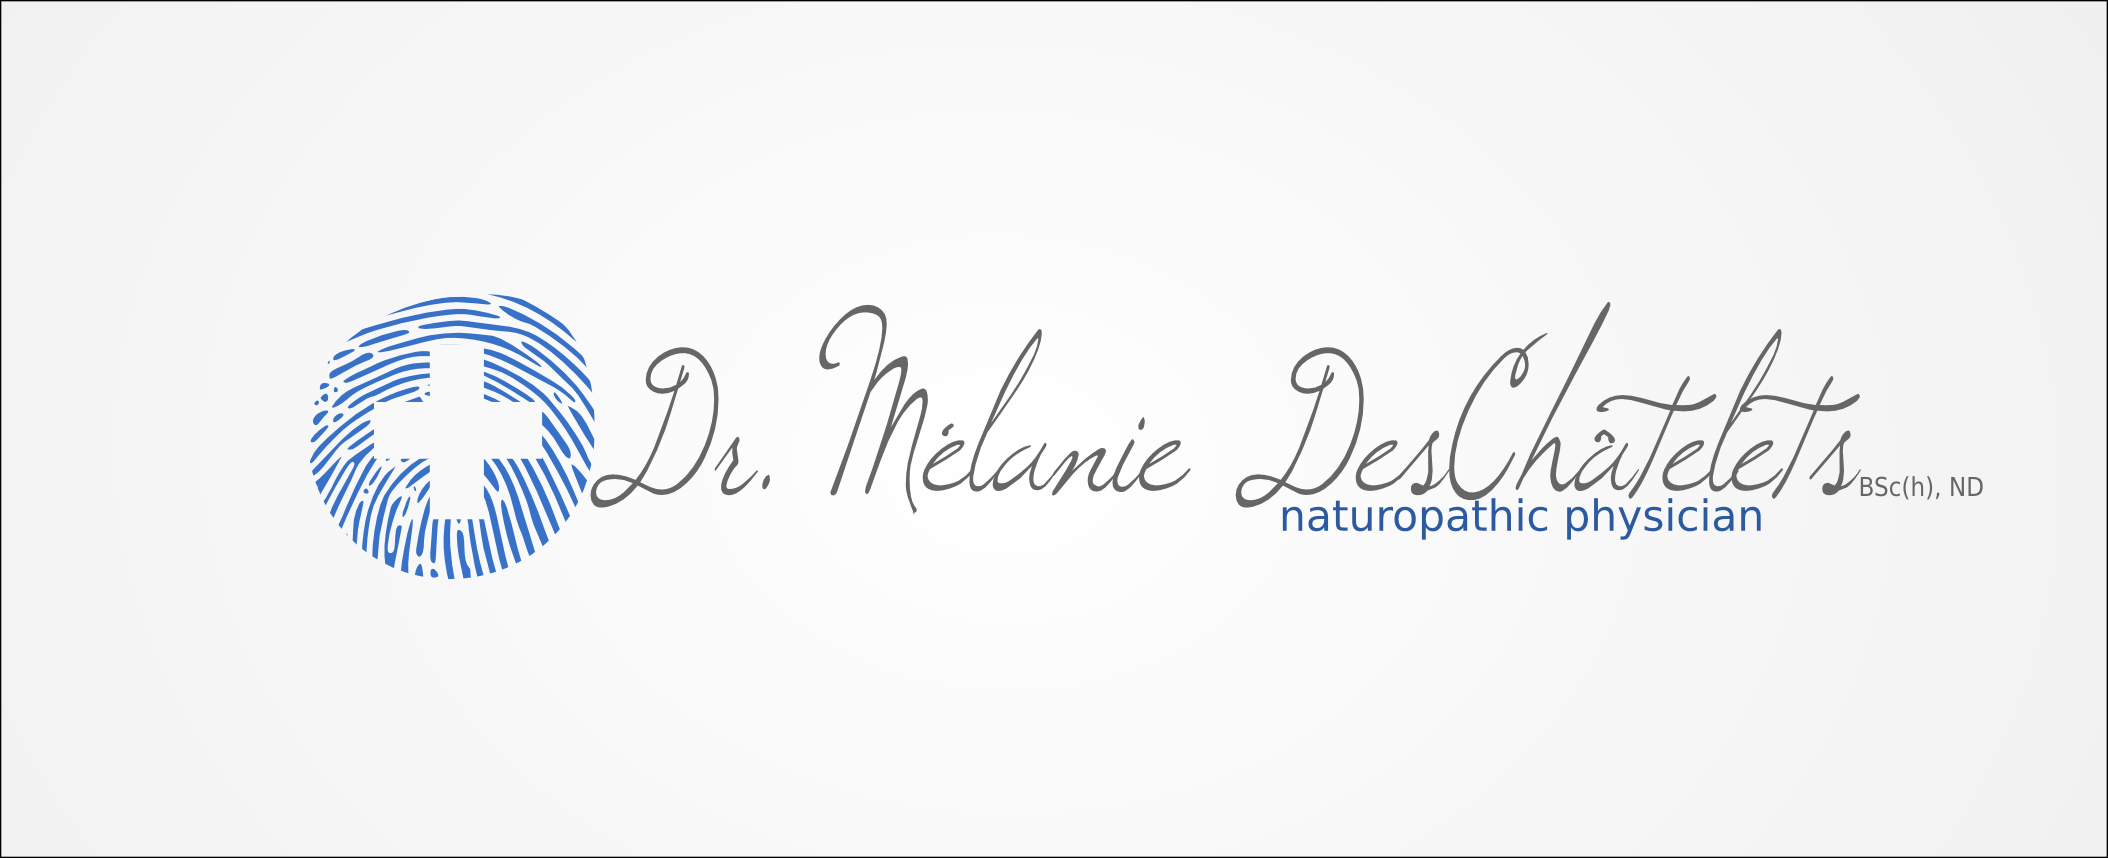 Logo Design by Andrew Bertram - Entry No. 155 in the Logo Design Contest Artistic Logo Design for Dr Mélanie DesChâtelets.